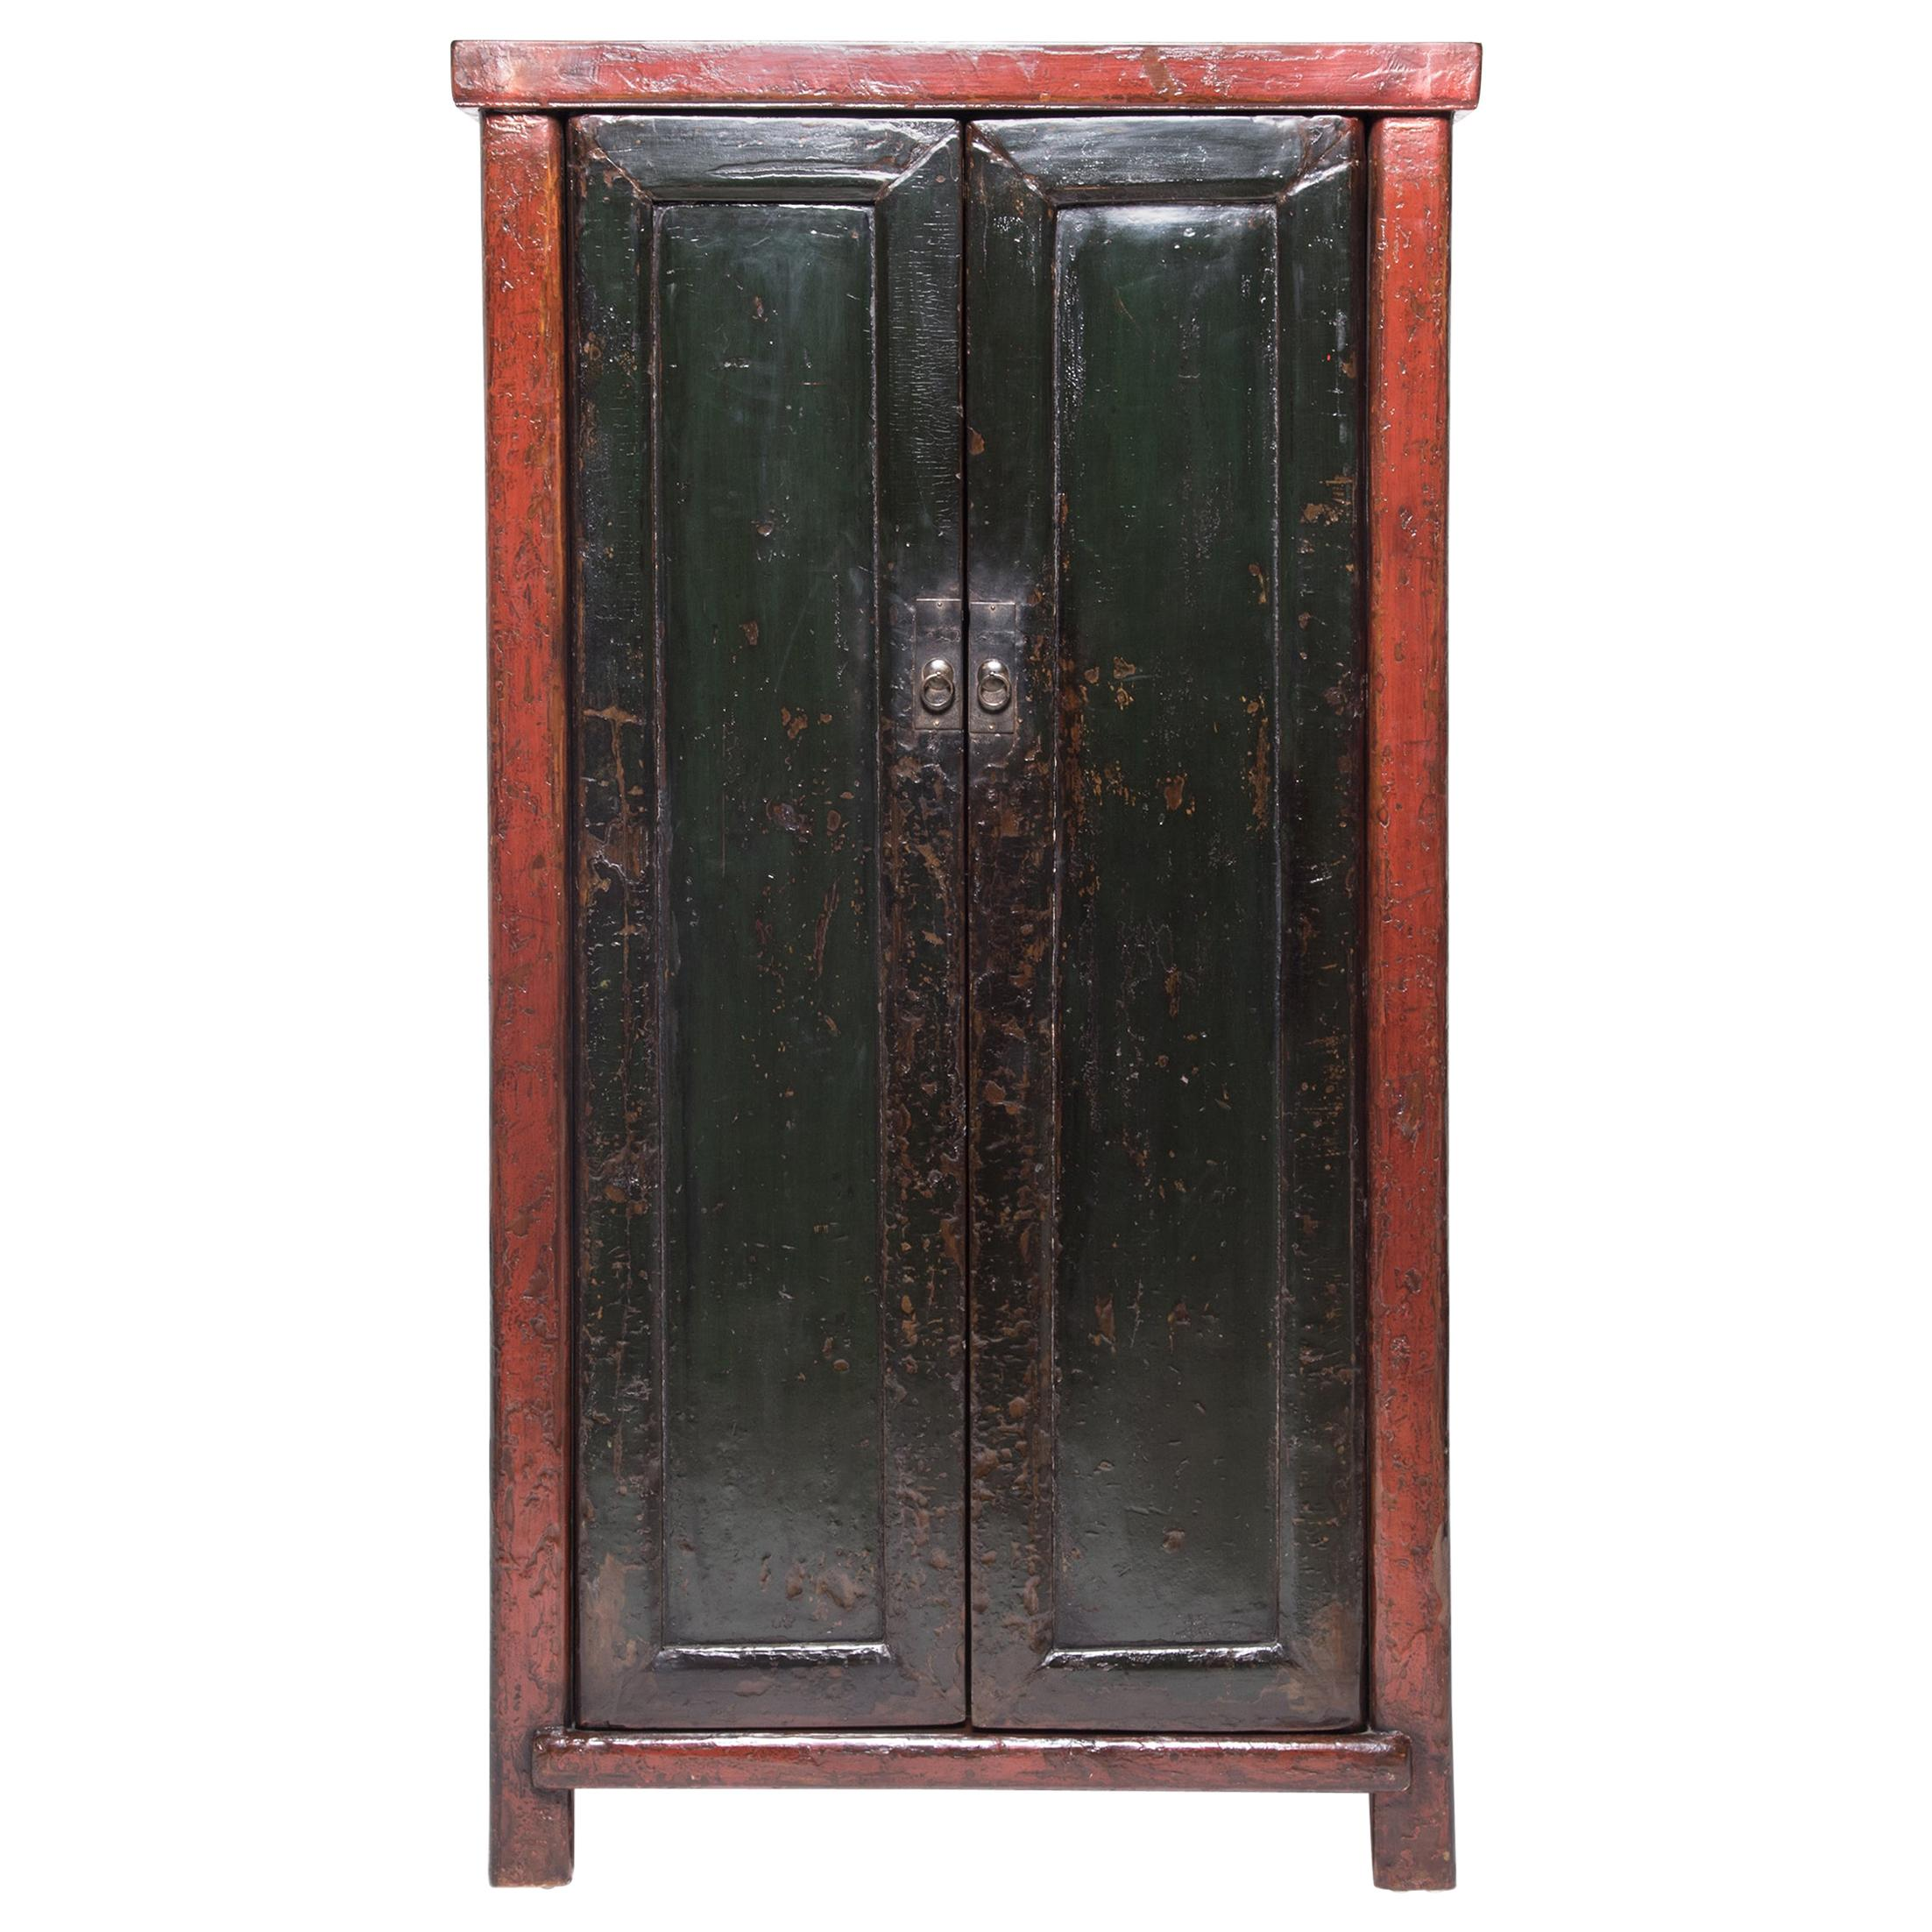 Chinese Red & Black Lacquer Cabinet, c. 1850